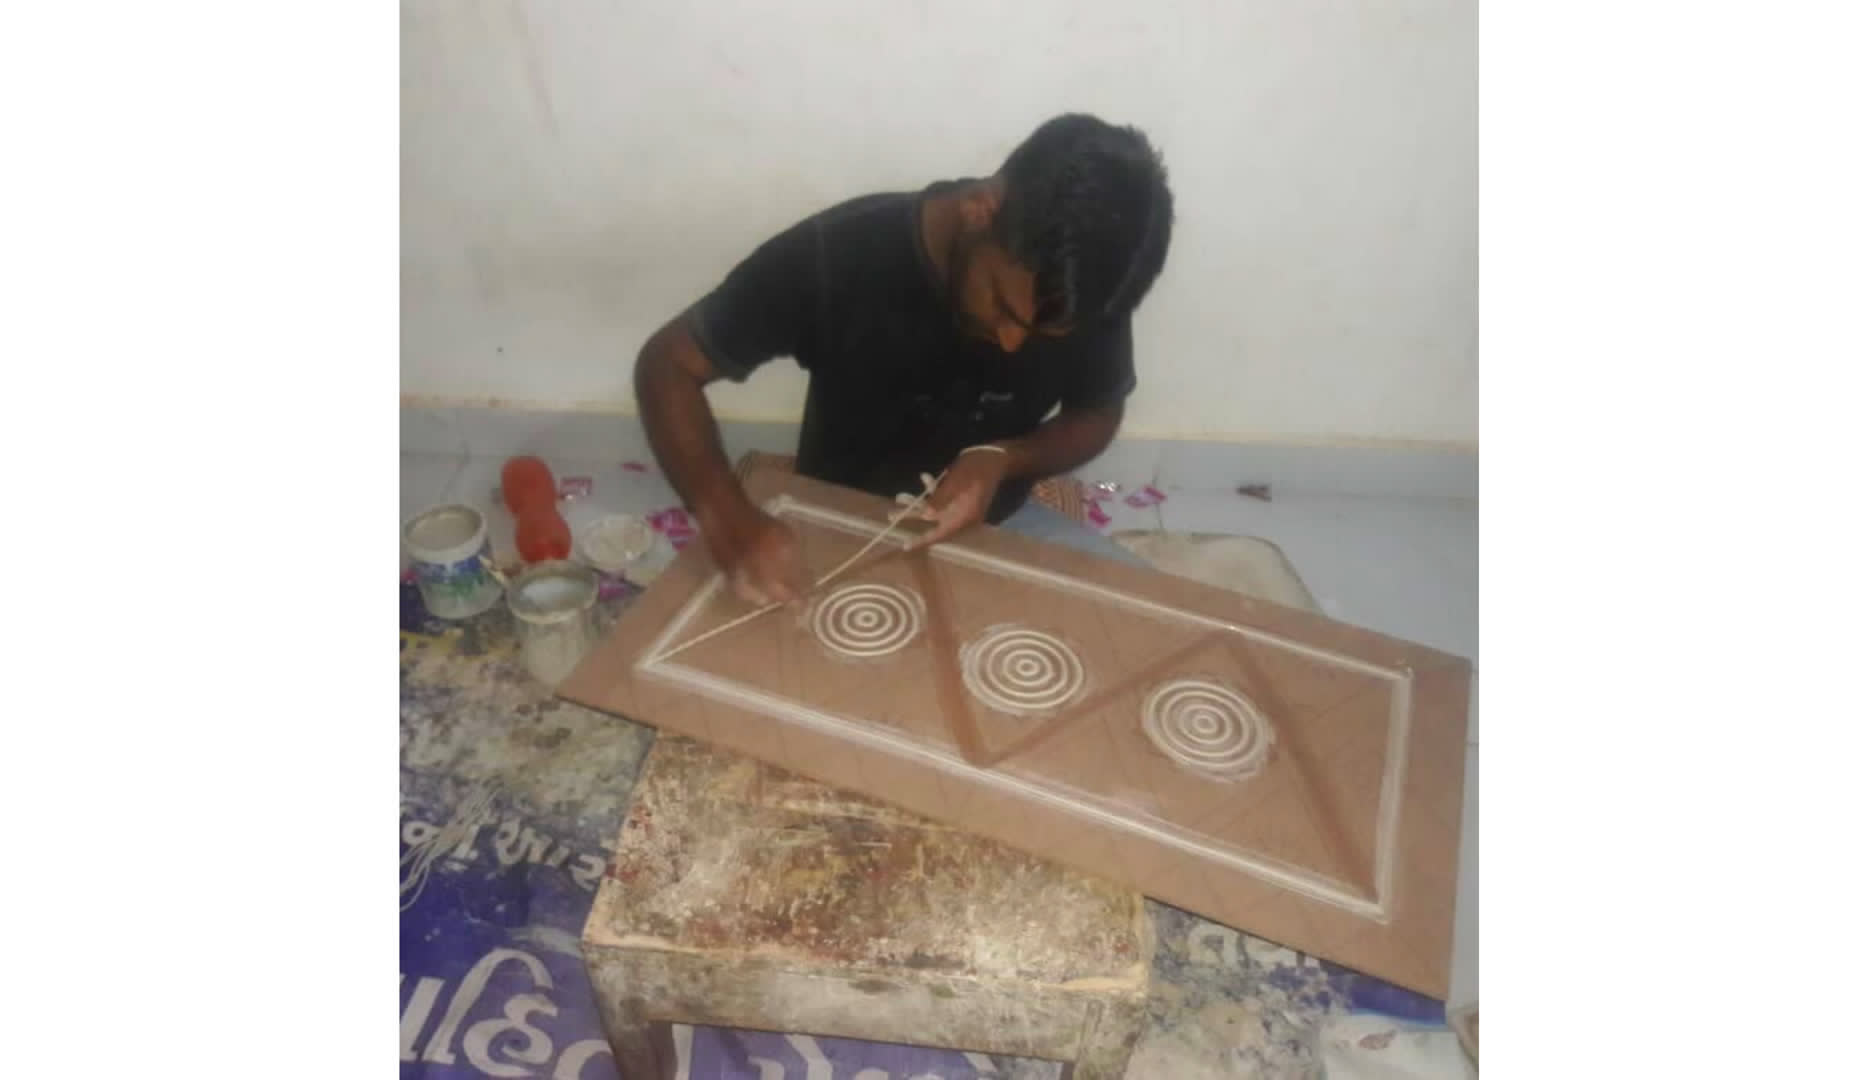 An artisan from Kutch working with the dough